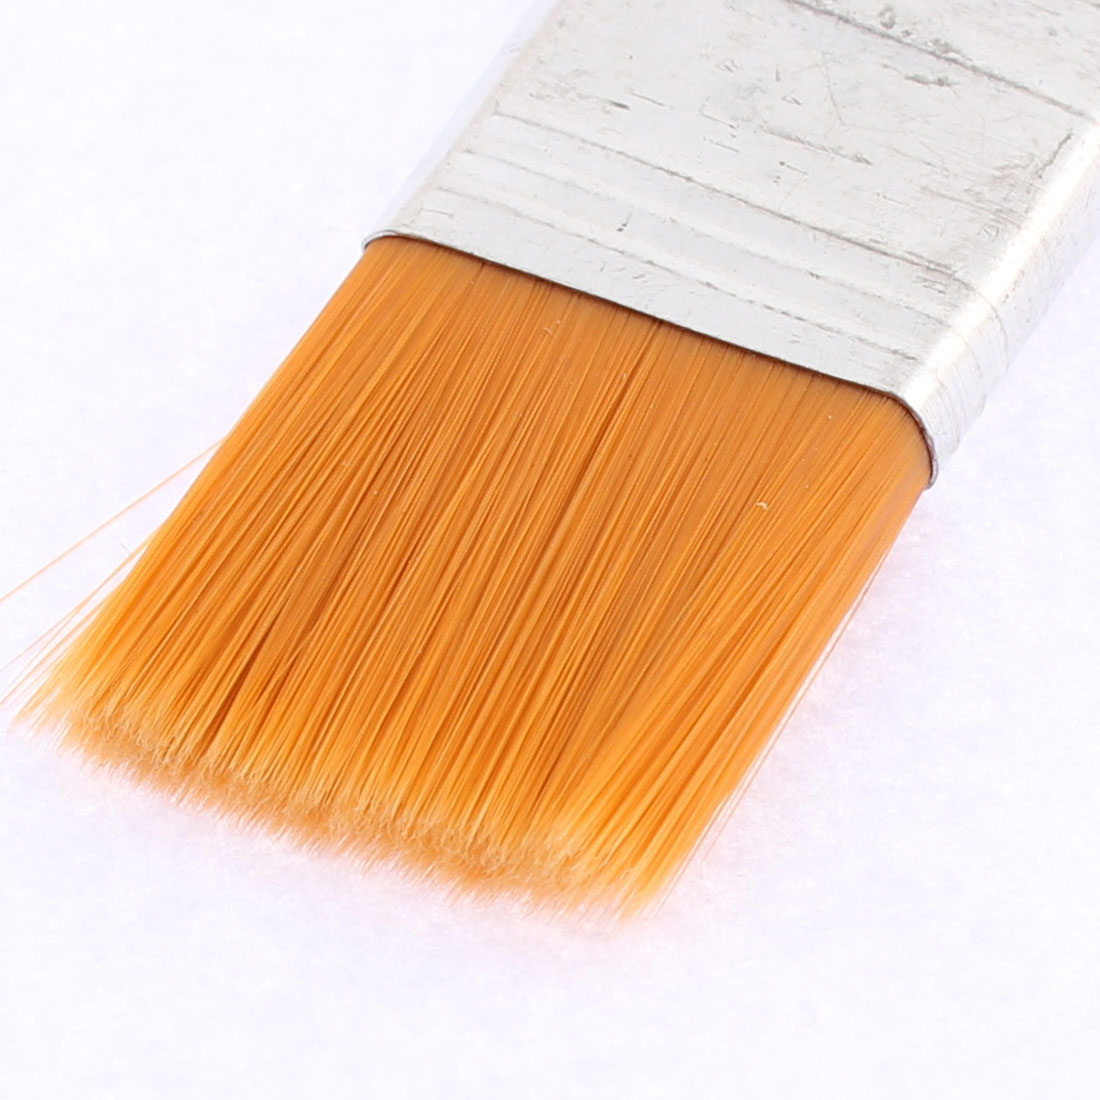 Artist Wooden Handle Oil Paint Painting Brushes 25mm x 23mm Bristles Head 5 Pcs - image 1 of 2